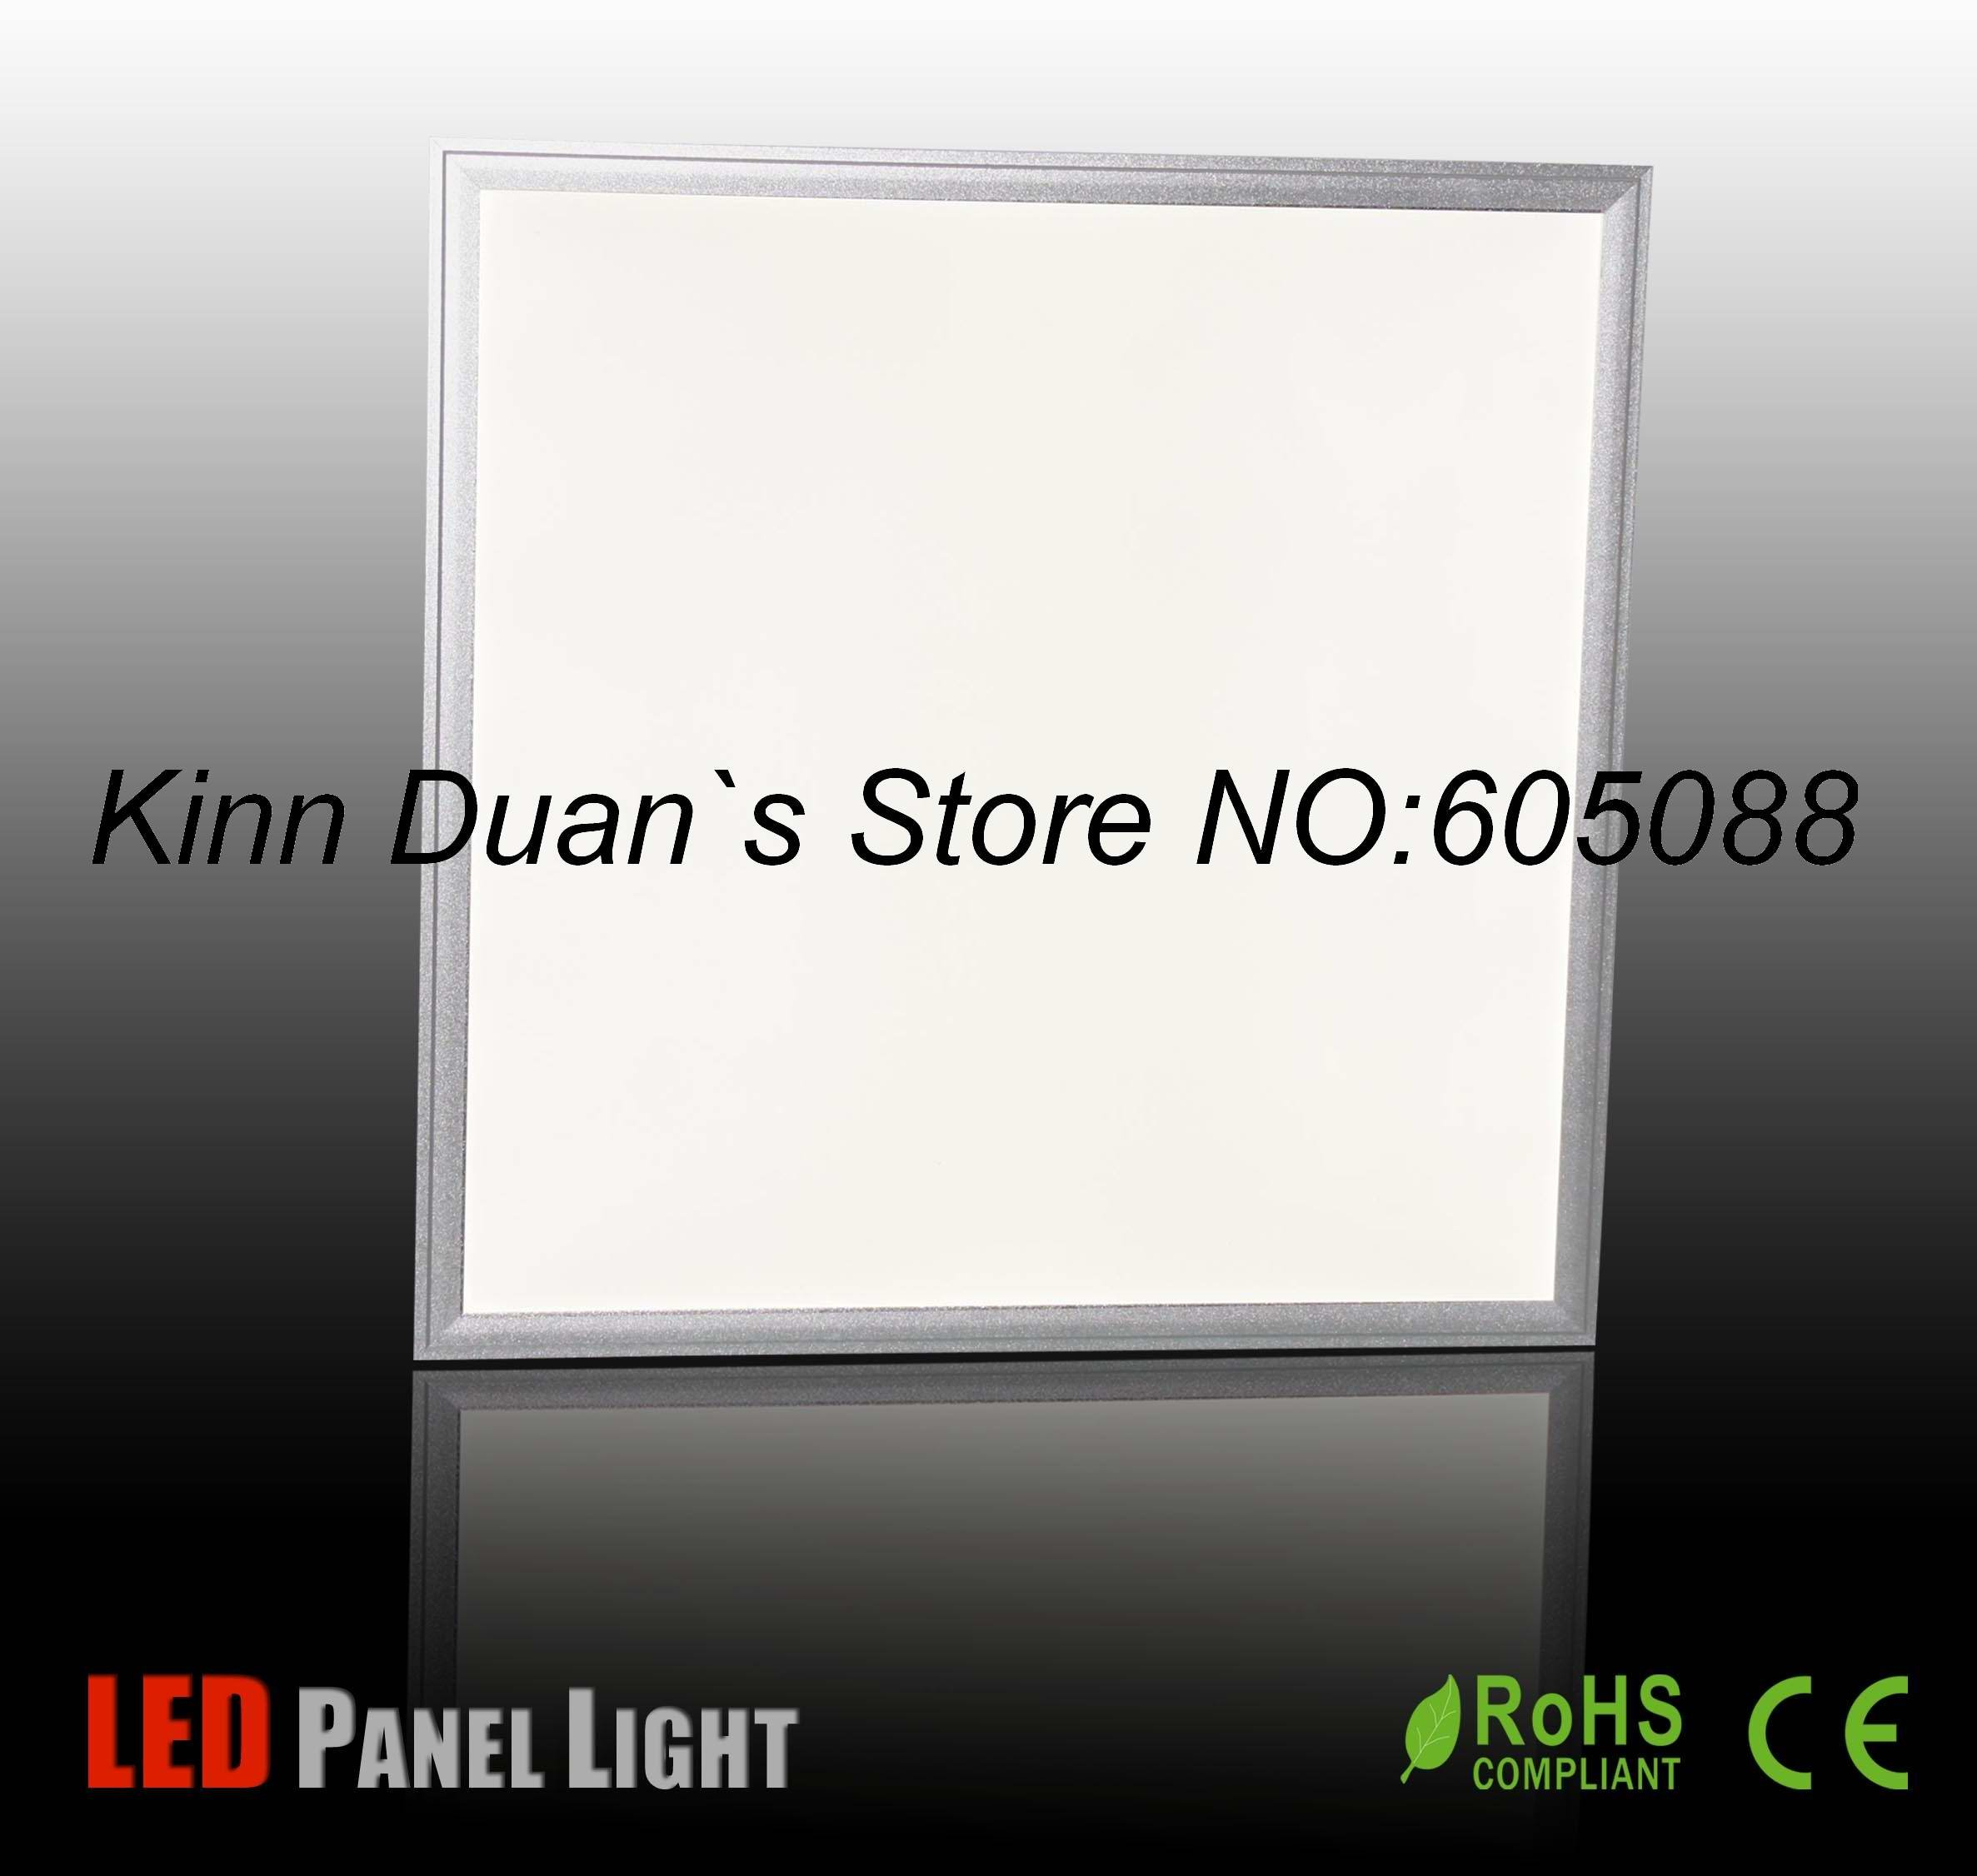 39w ceiling embeded commercial led lamp AC100-240v led panel lighting 600x600mm 2500lm CE&ROHS 2pcs/lot wholesale and retail